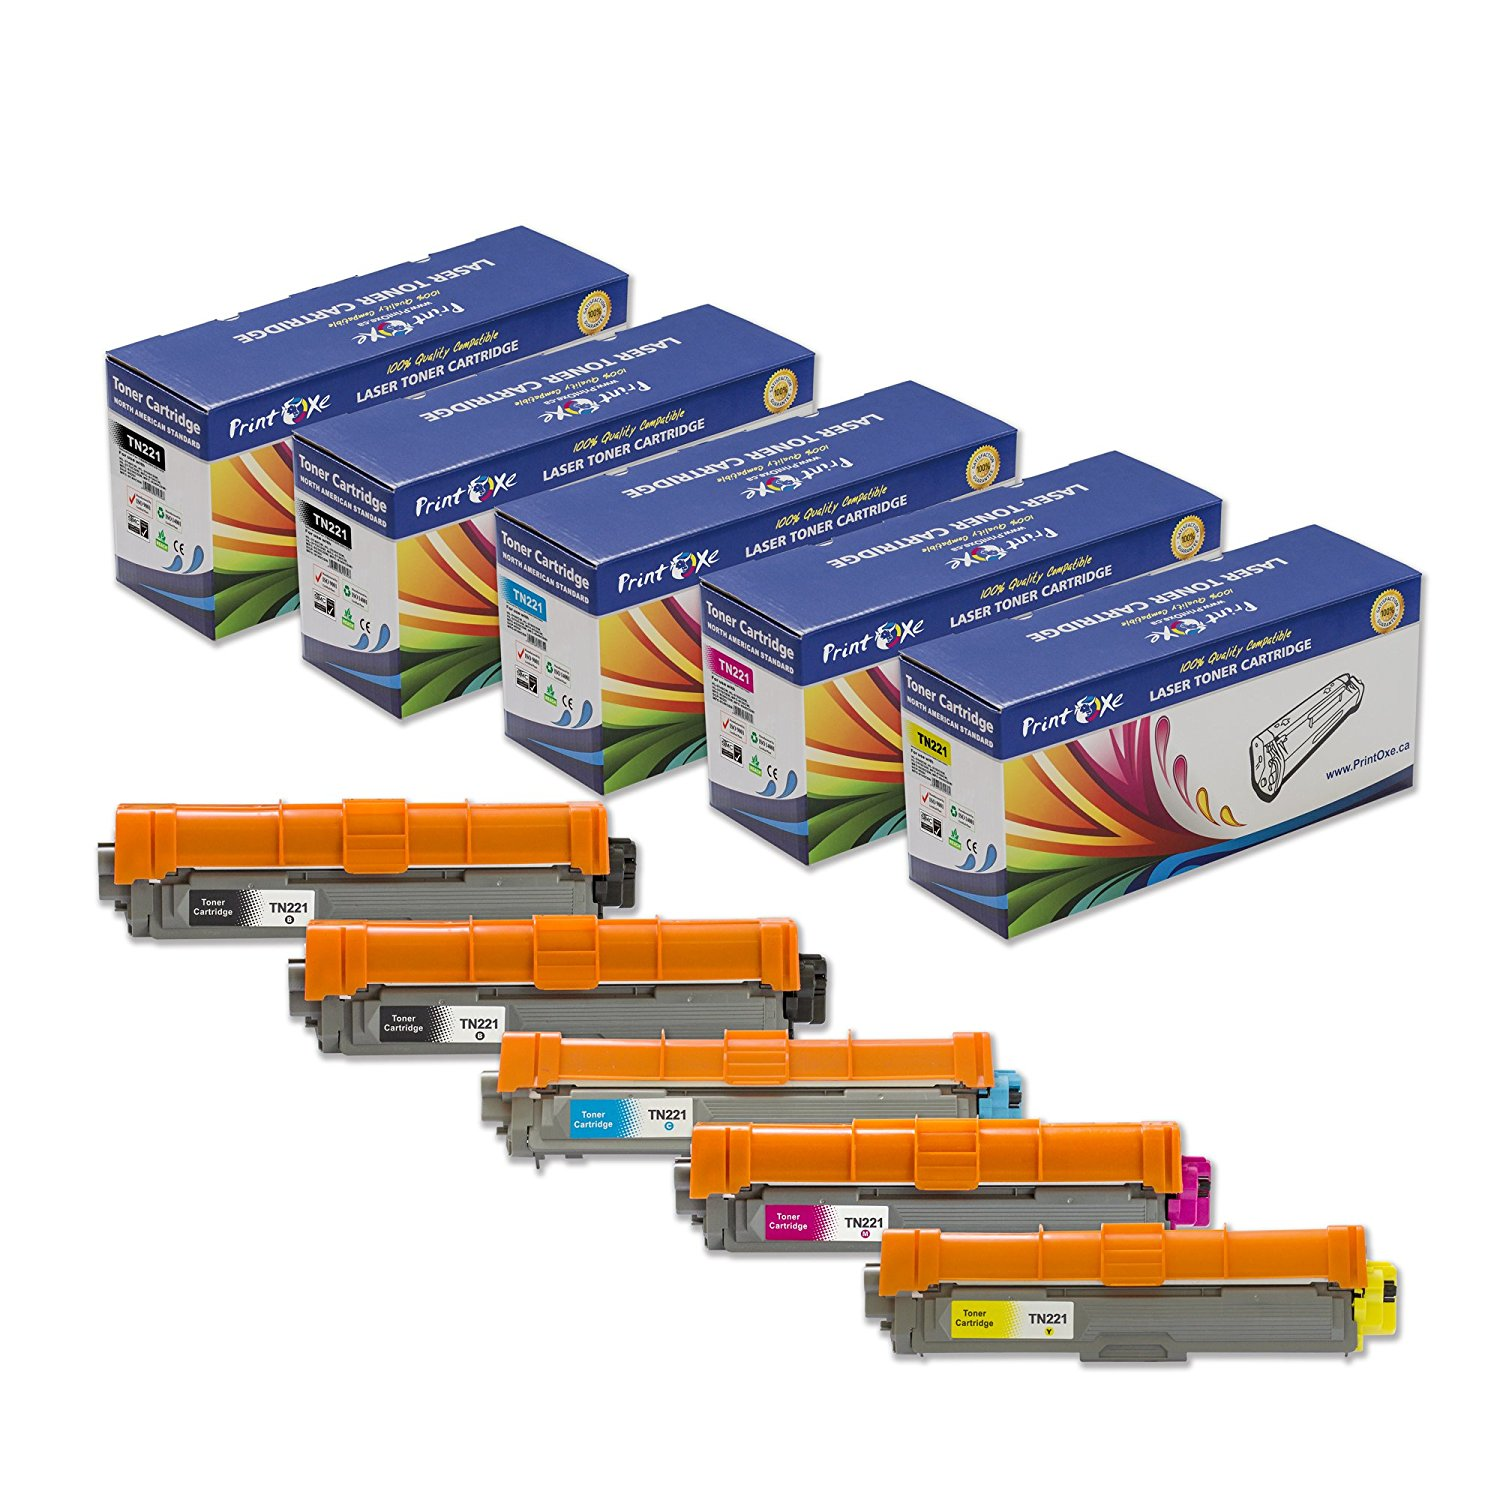 Cyan LD Compatible Toner Cartridge Replacement for Dell 332-0400 5R6J0